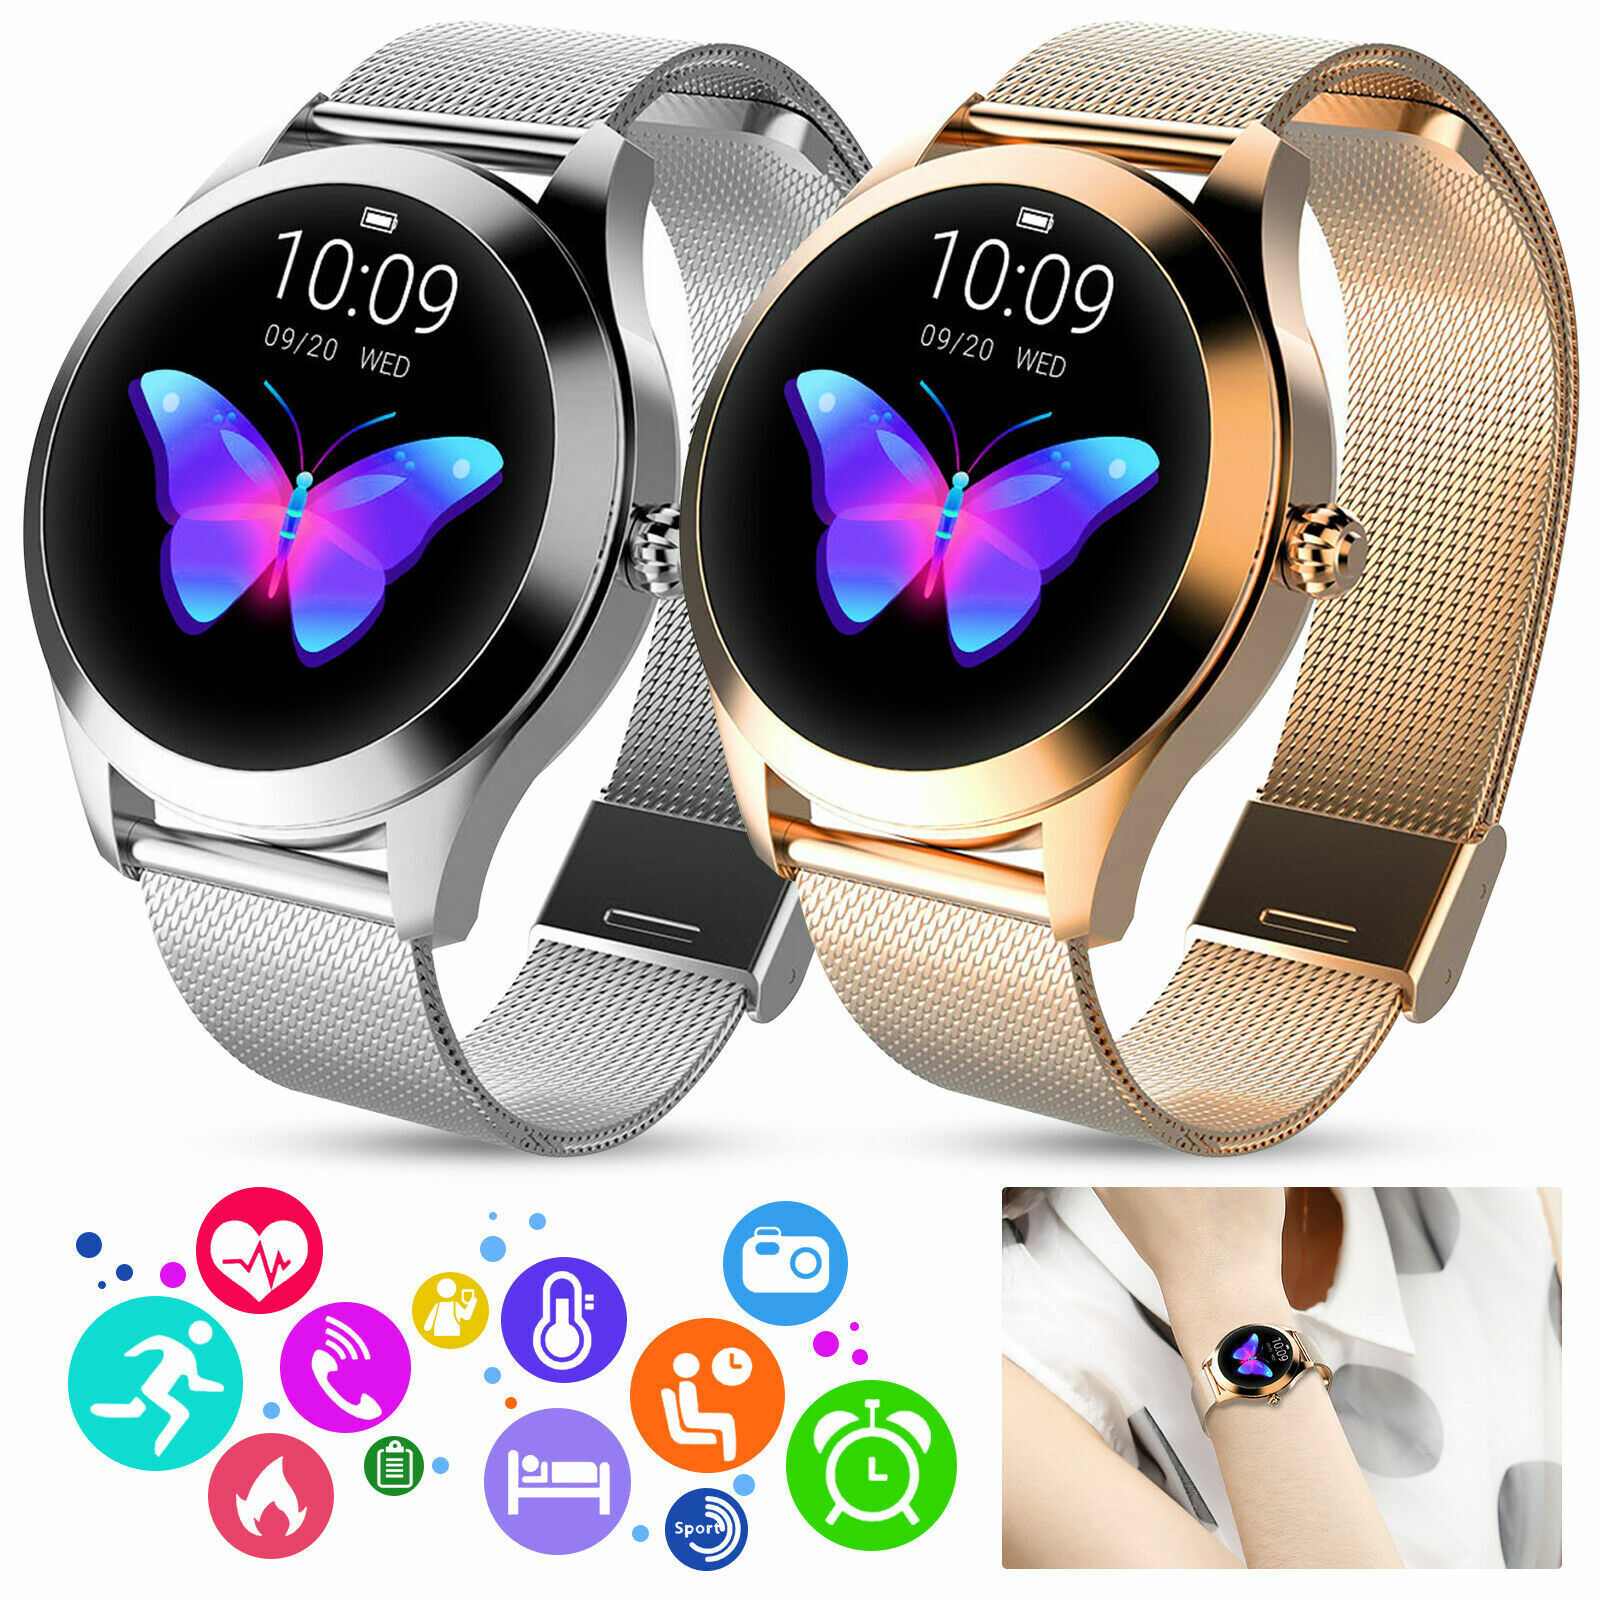 Women Bluetooth Smart Watch Waterproof Heart Rate Pedometer For Android iOS Gift android bluetooth Featured for heart pedometer rate smart watch waterproof women